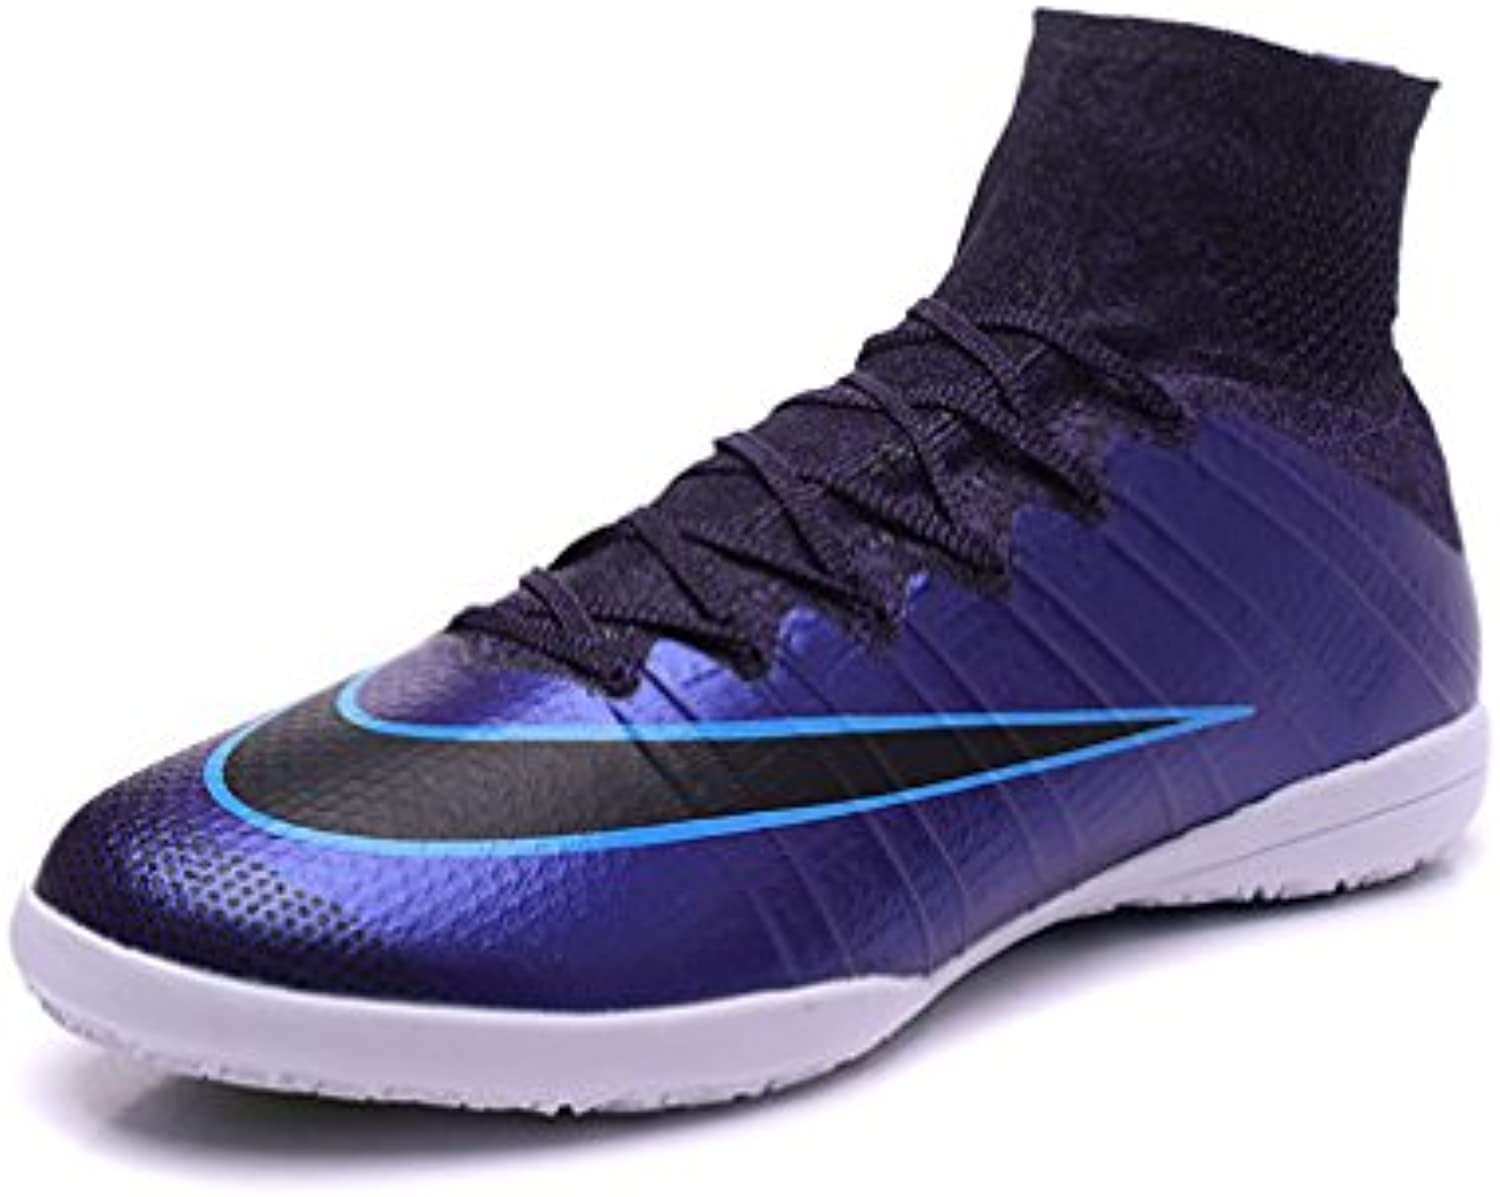 mercurialx Proximo ic mens boots indoor High Top Fußball Schuhe Fußball Stiefel